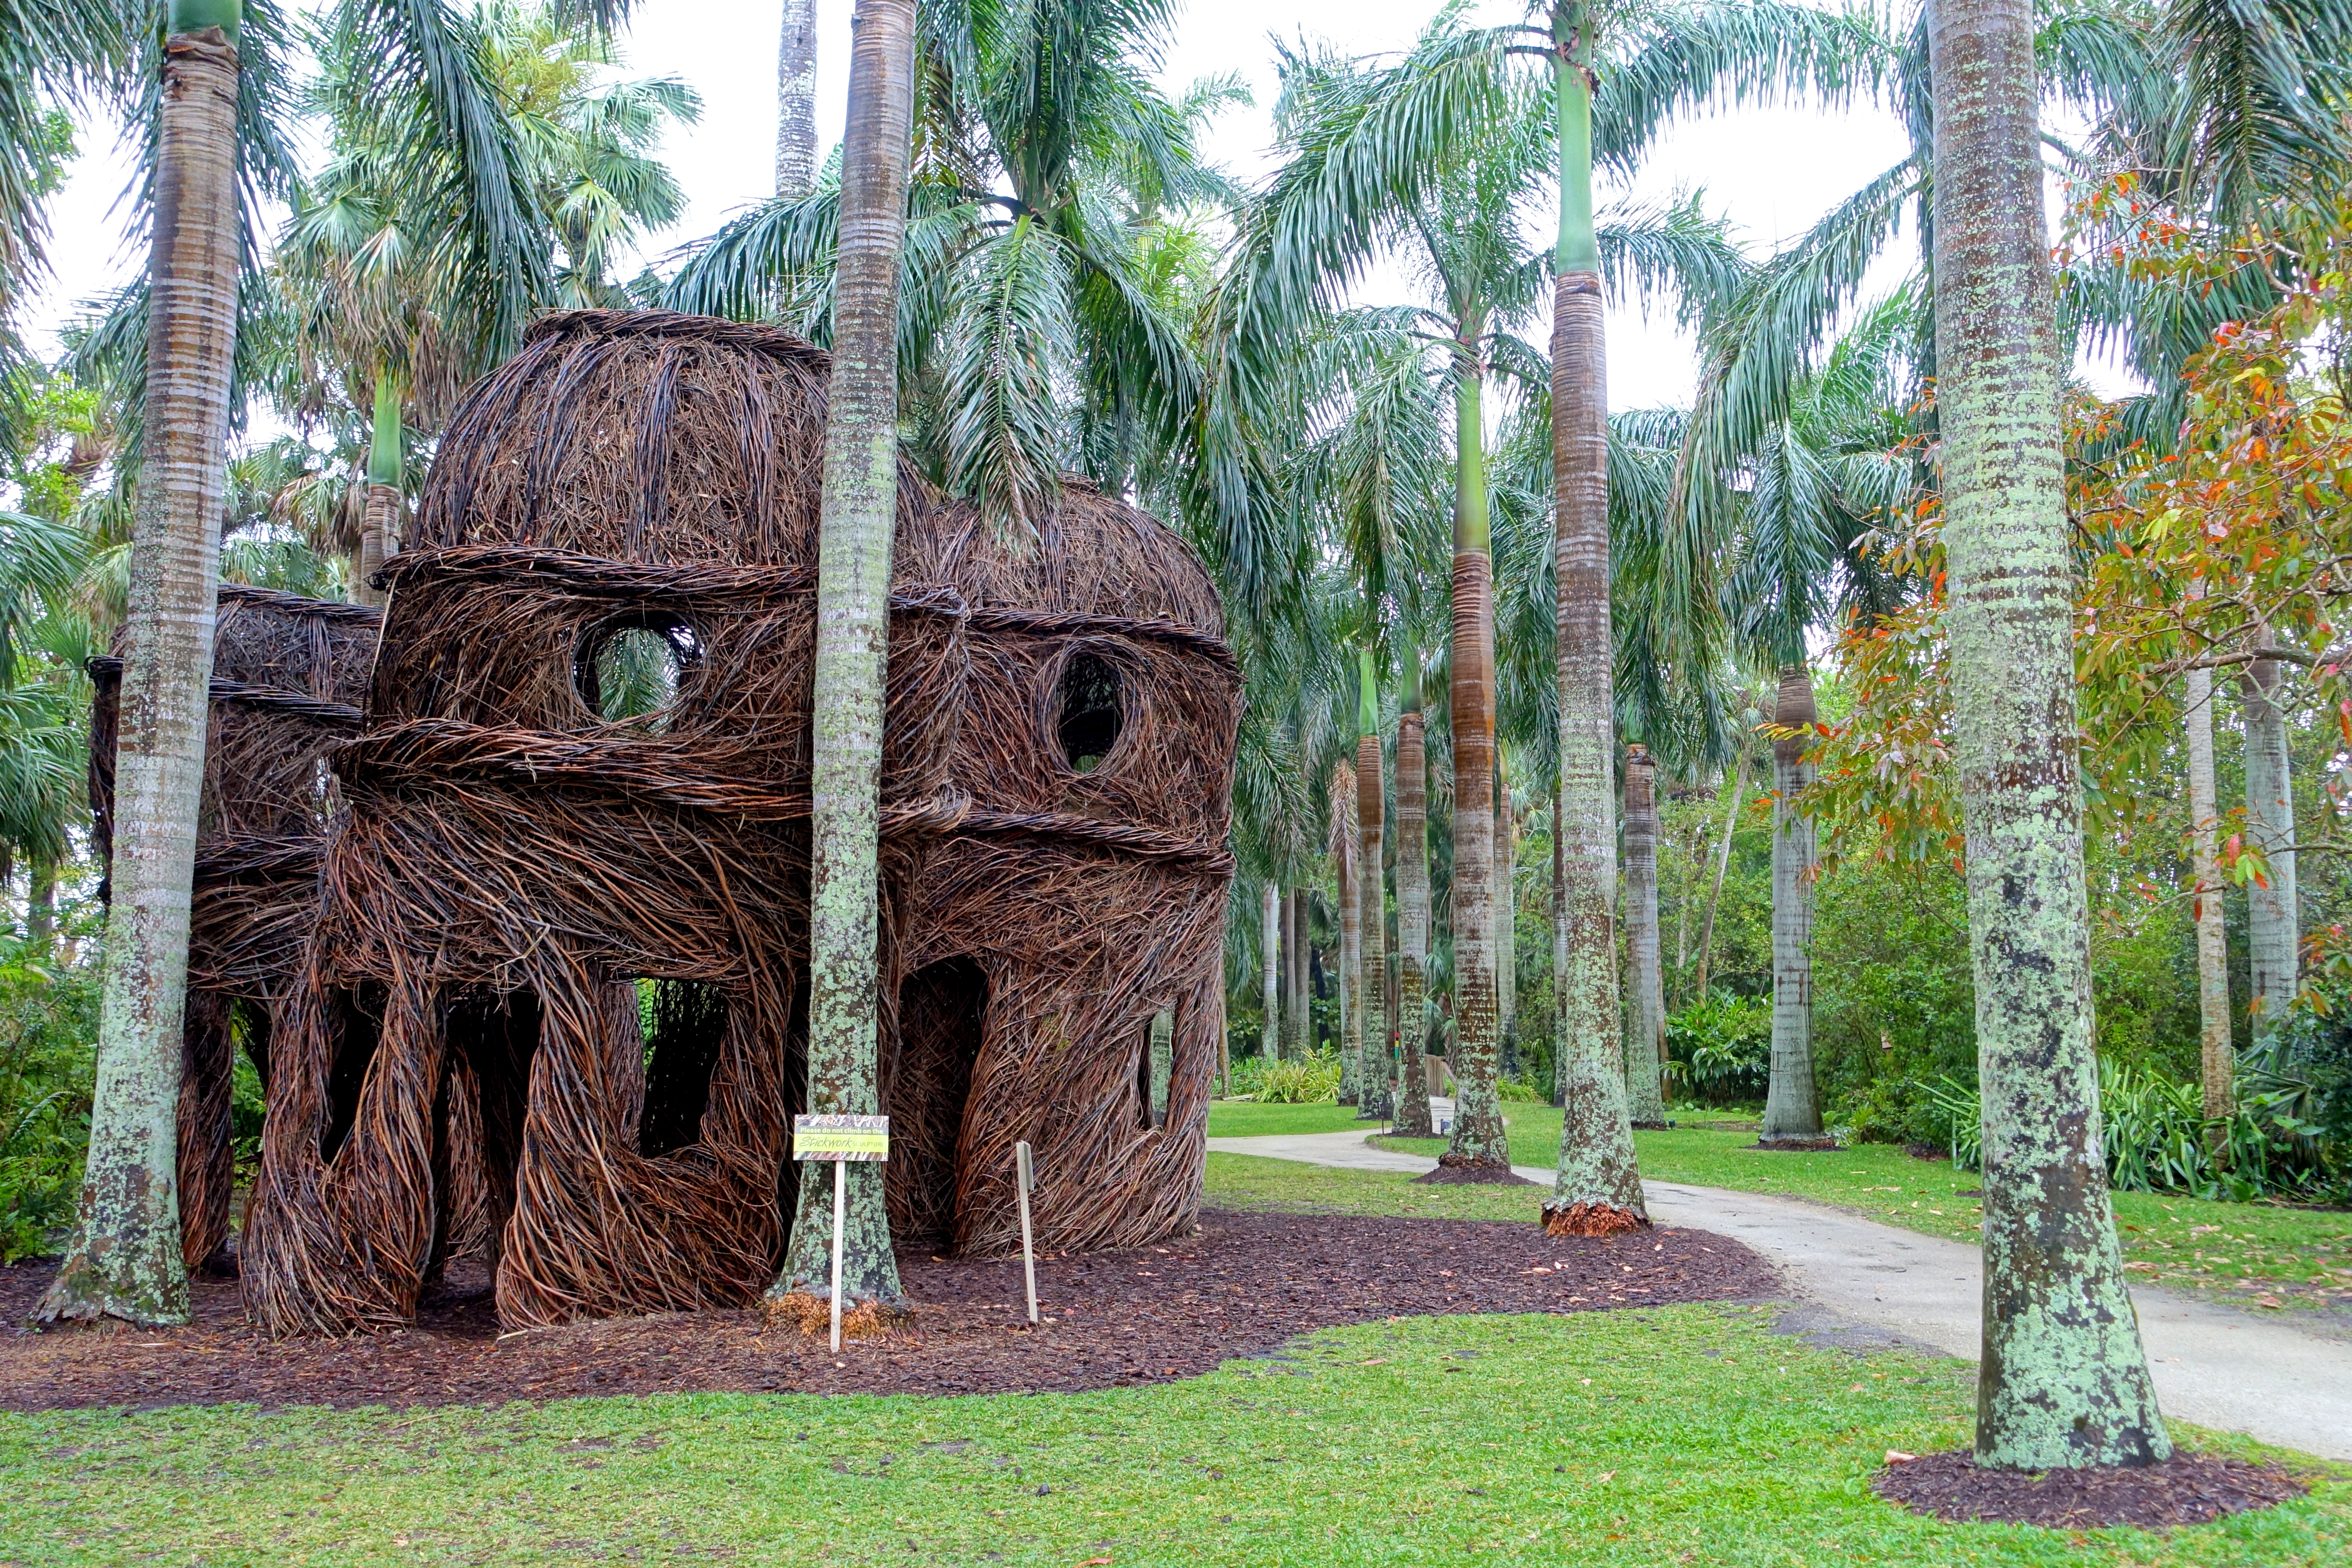 File:The Royals by Patrick Dougherty, 2016 - McKee Botanical Garden ...